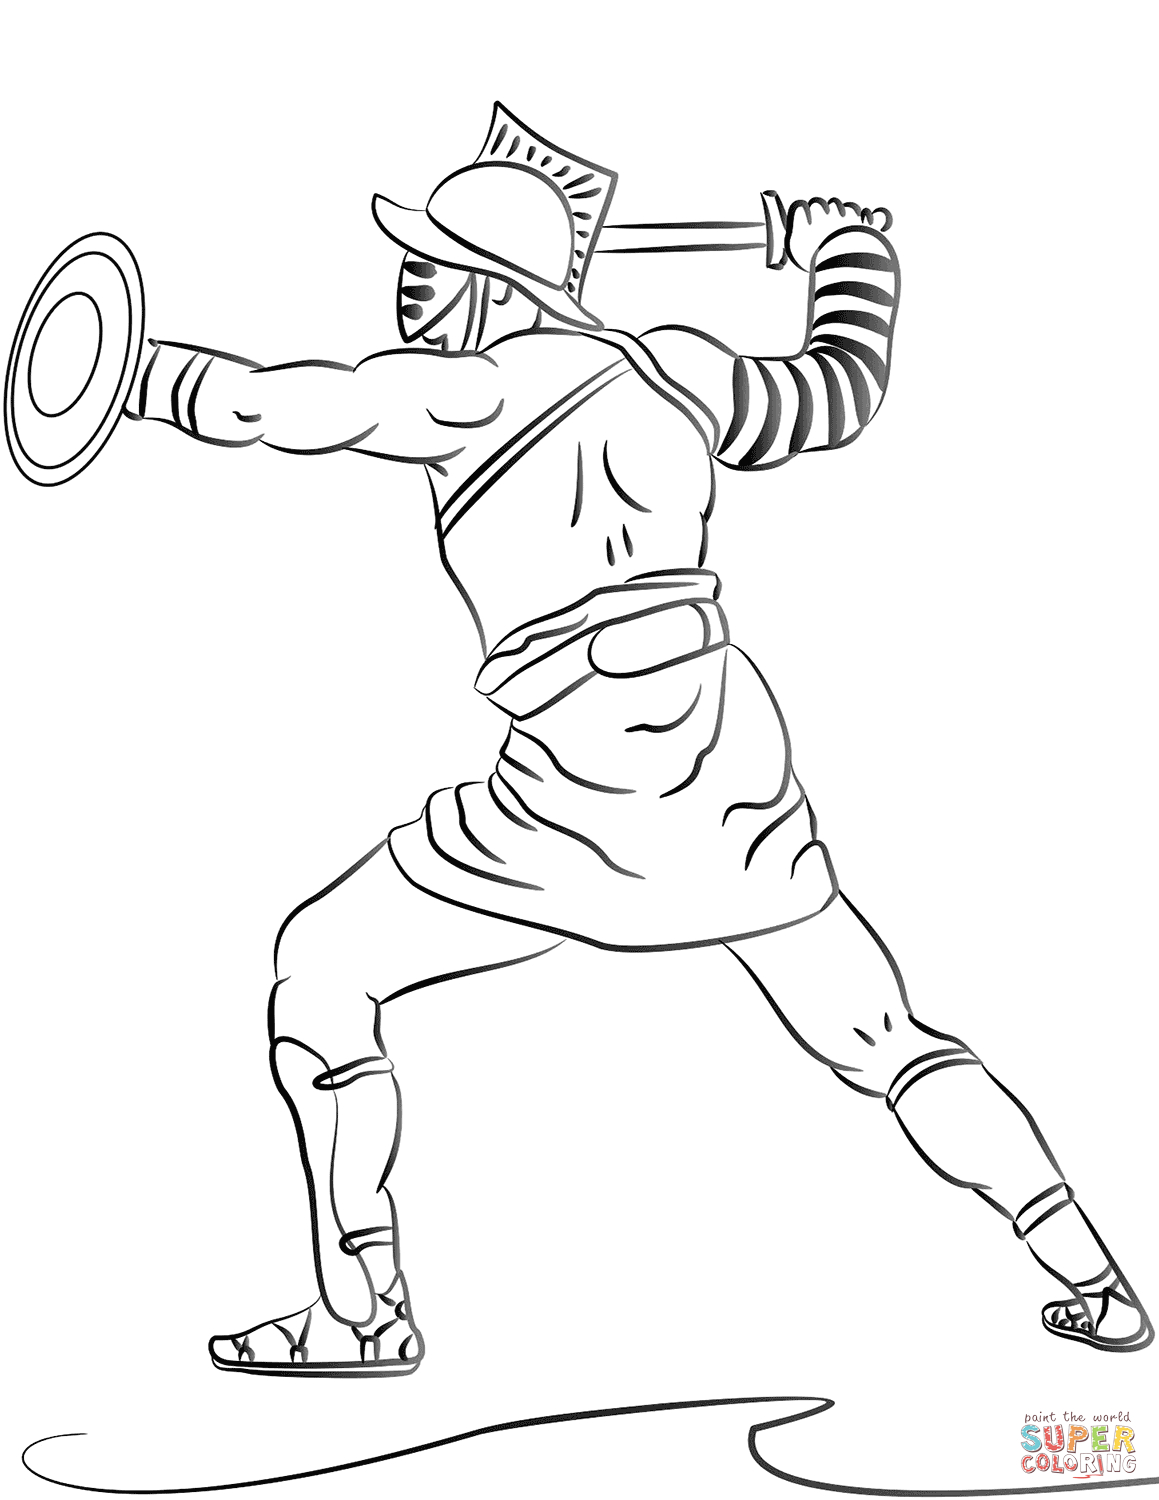 Inspired Image of Italy Coloring Pages